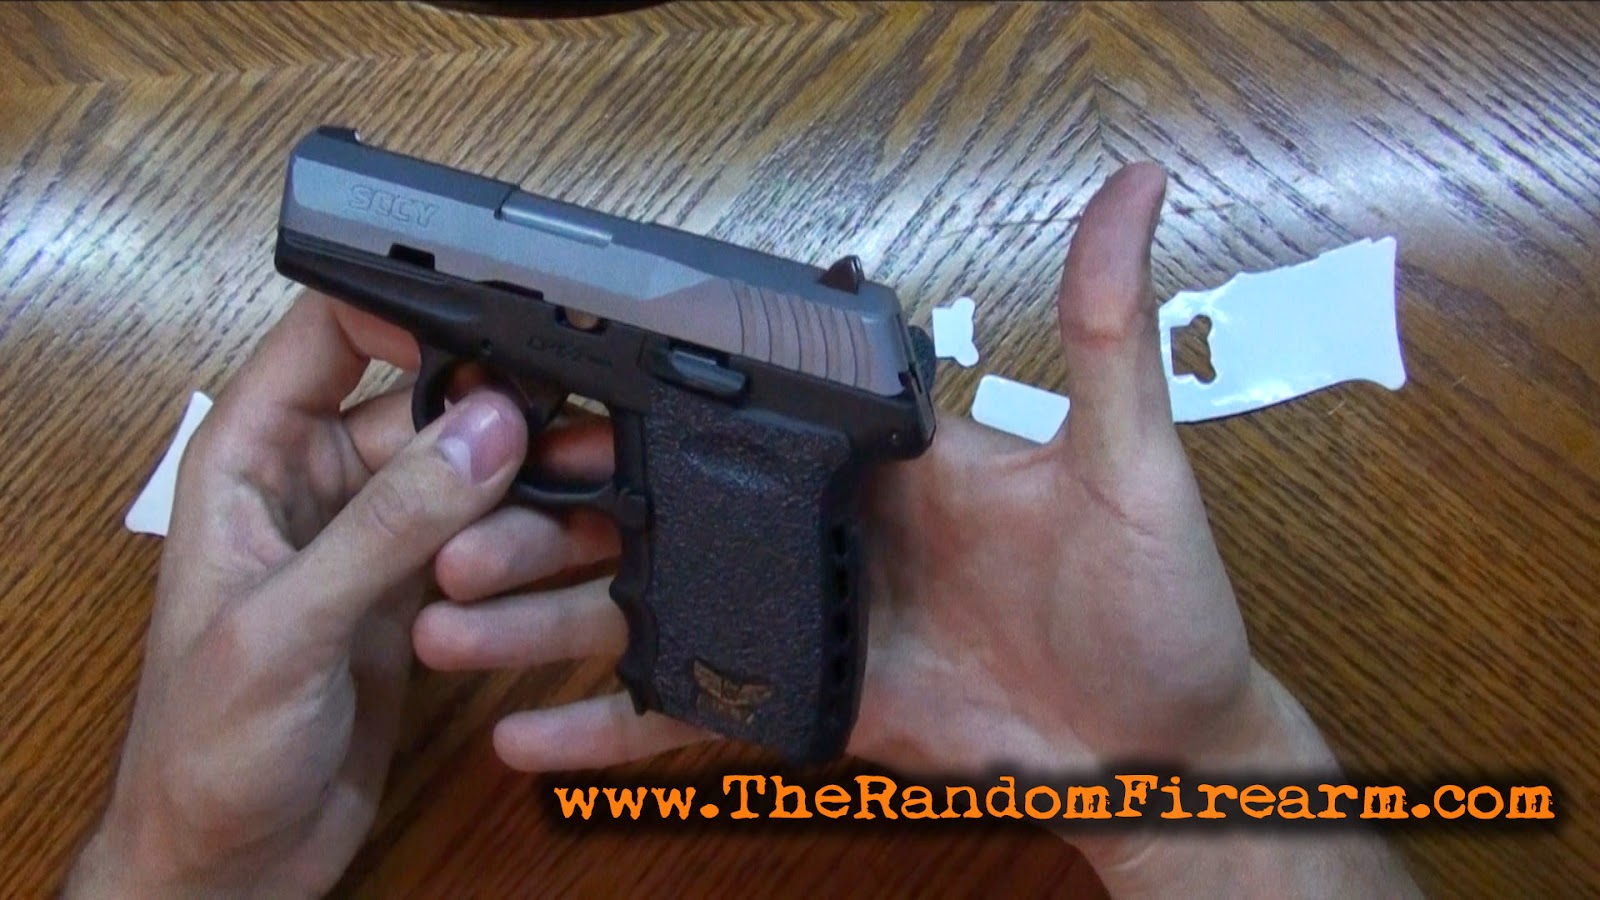 sccy cpx 2 review traction grips 9mm galloway precision guns handgun pistol concealed carry